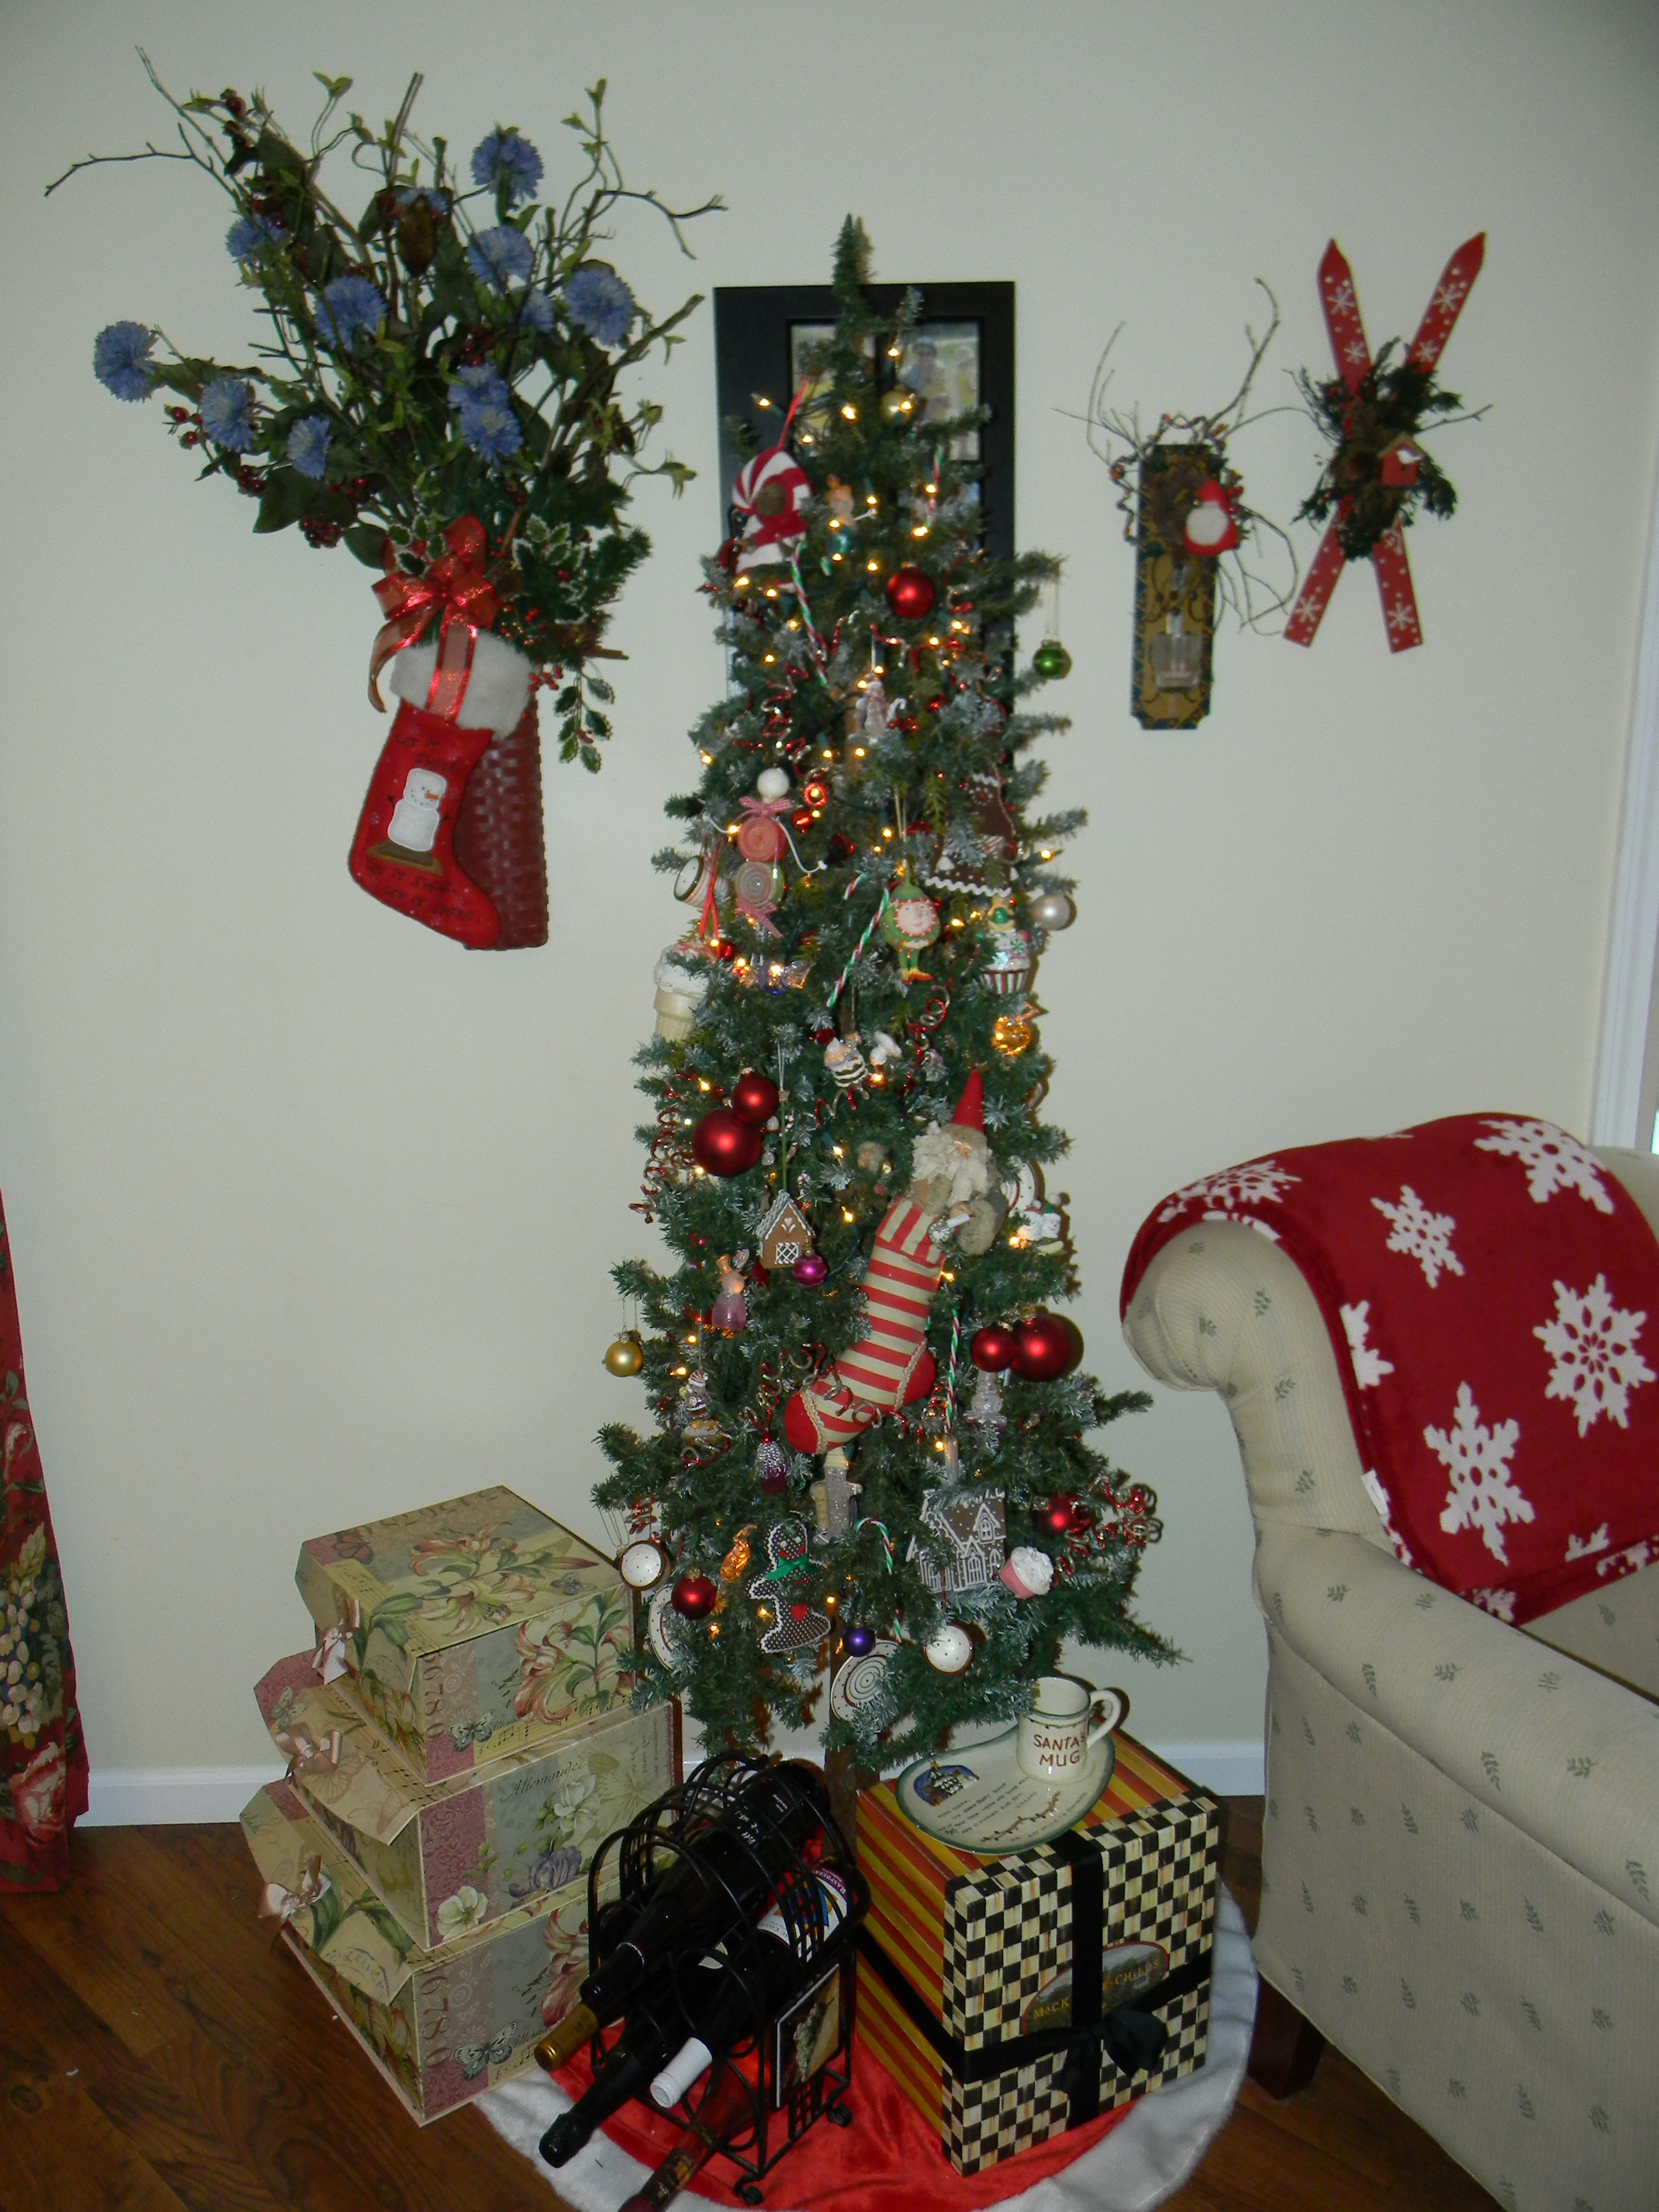 JAZZING Up Your Tree With A Decorative Christmas Tree Topper  - Decorate Christmas Tree Without Ornaments